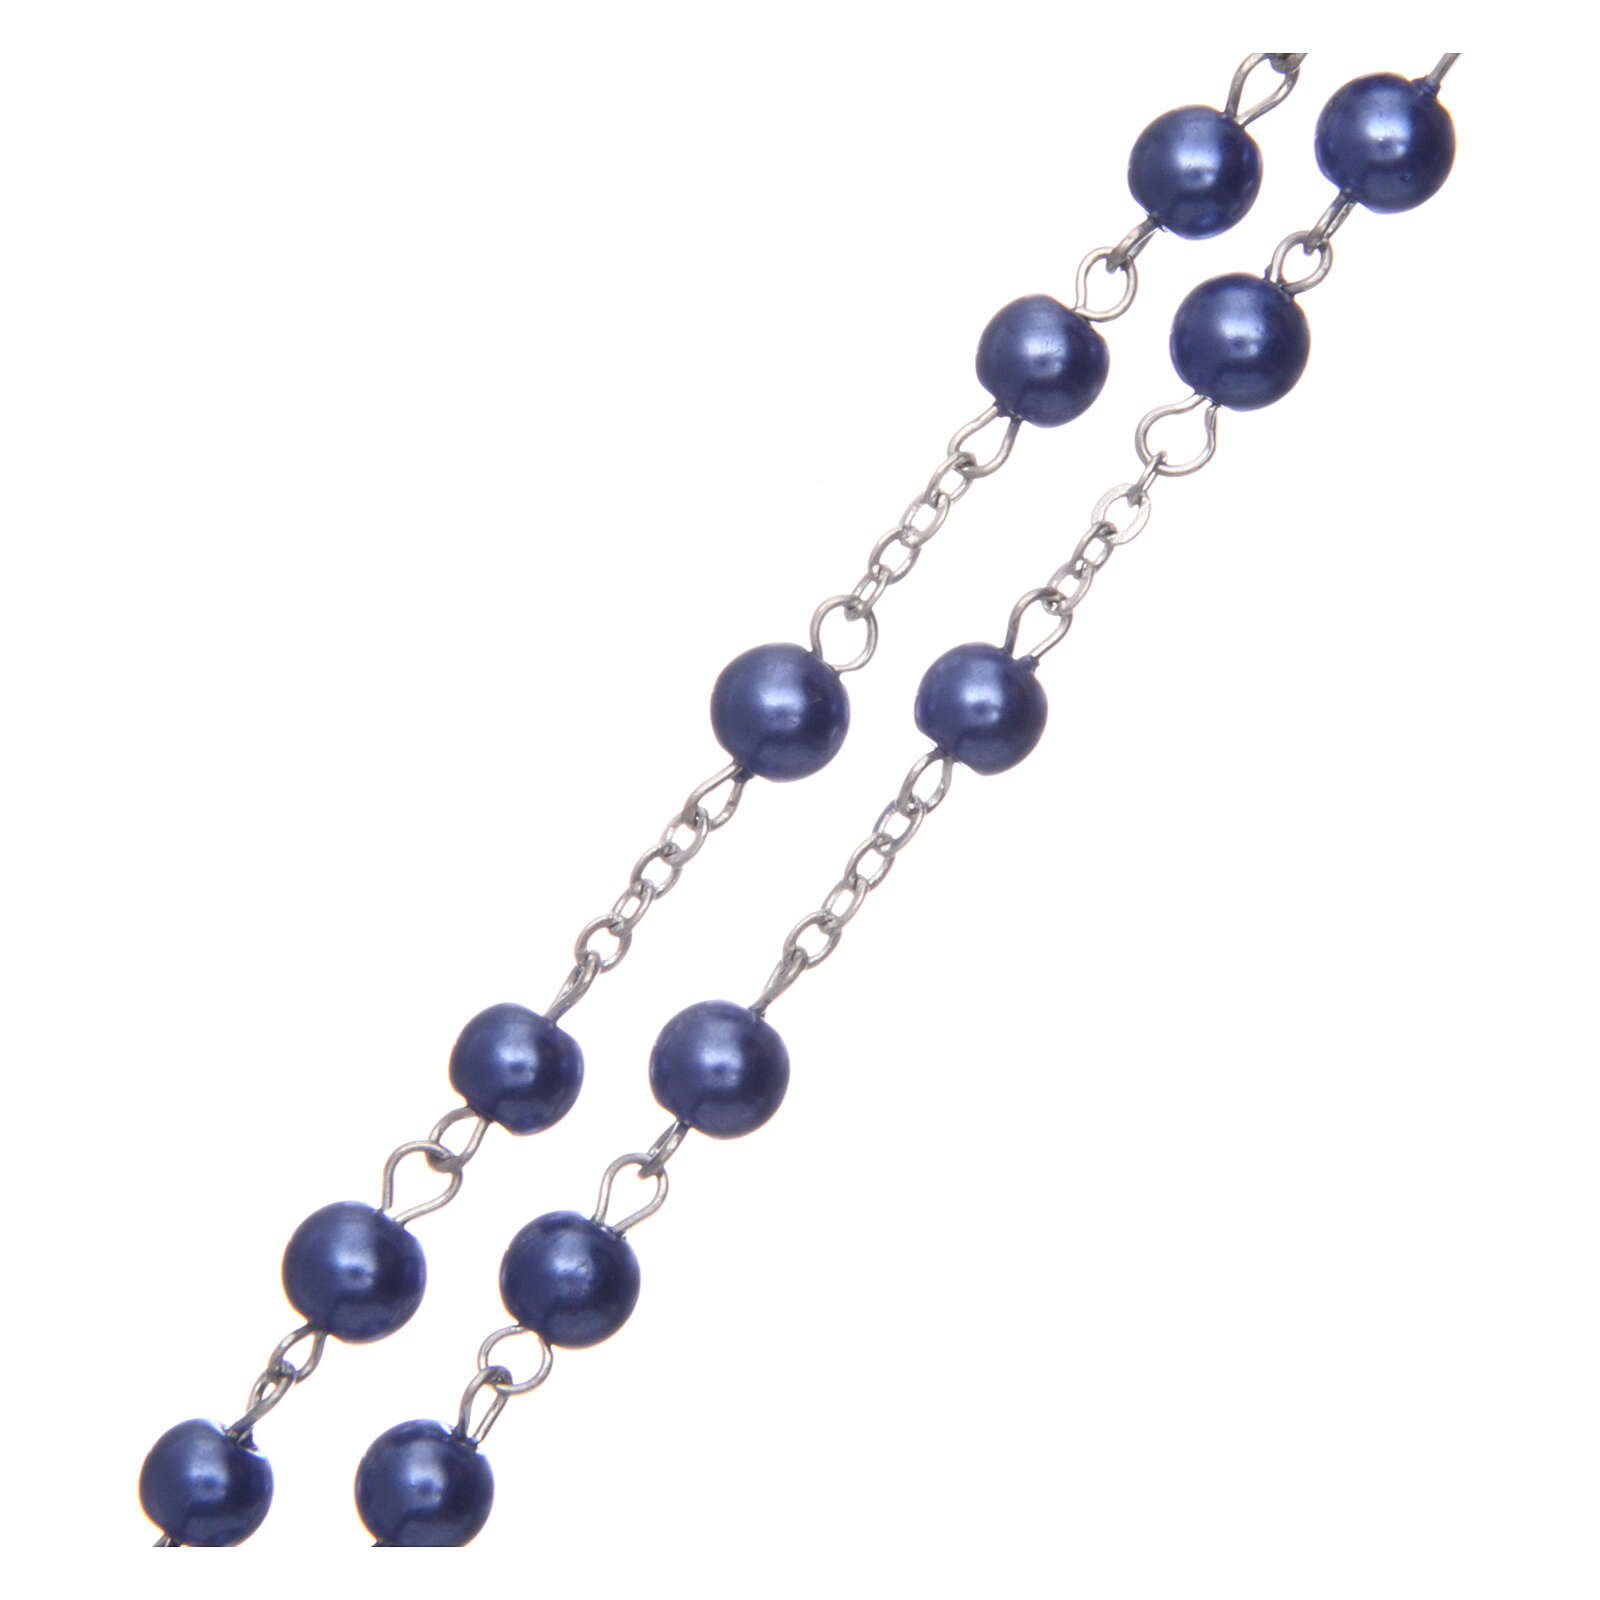 Imitation pearl rosary round violet beads 5 mm enamelled cross 4